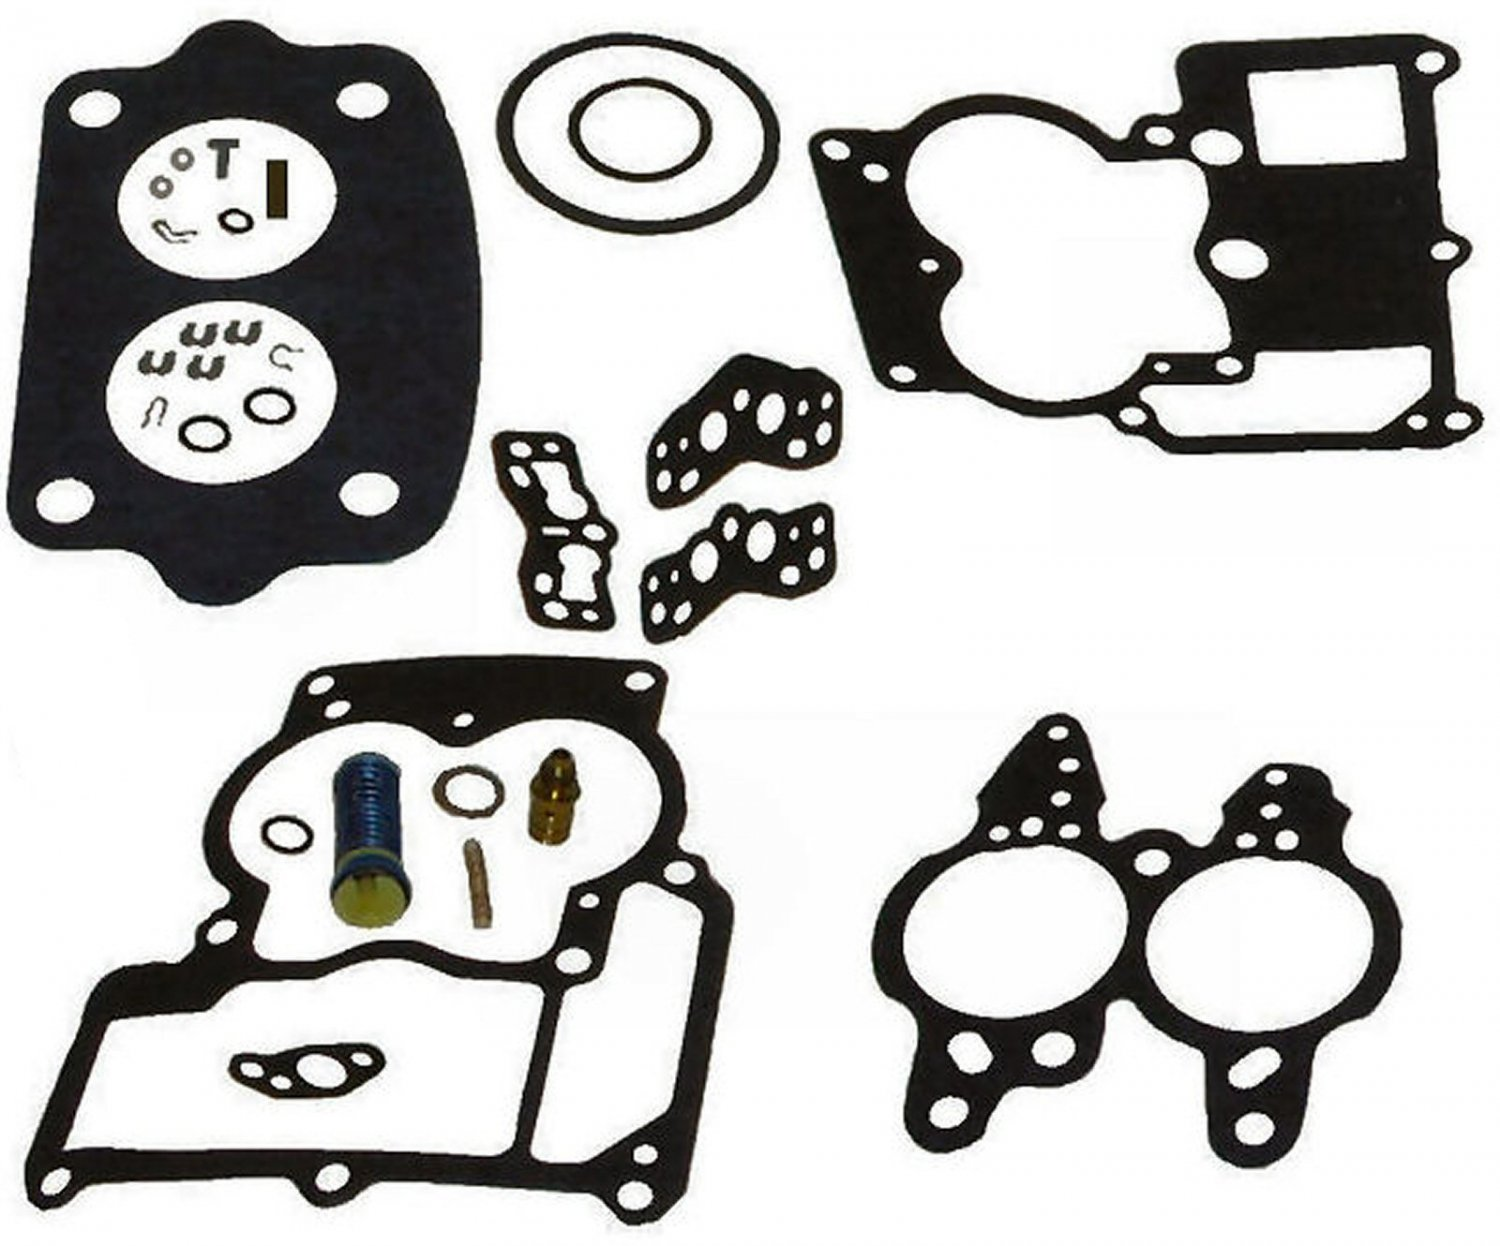 2bbl Rochester Carburetor Repair Kit For Inline 4 And 6 Cyl Gm Replaces A1 Tm